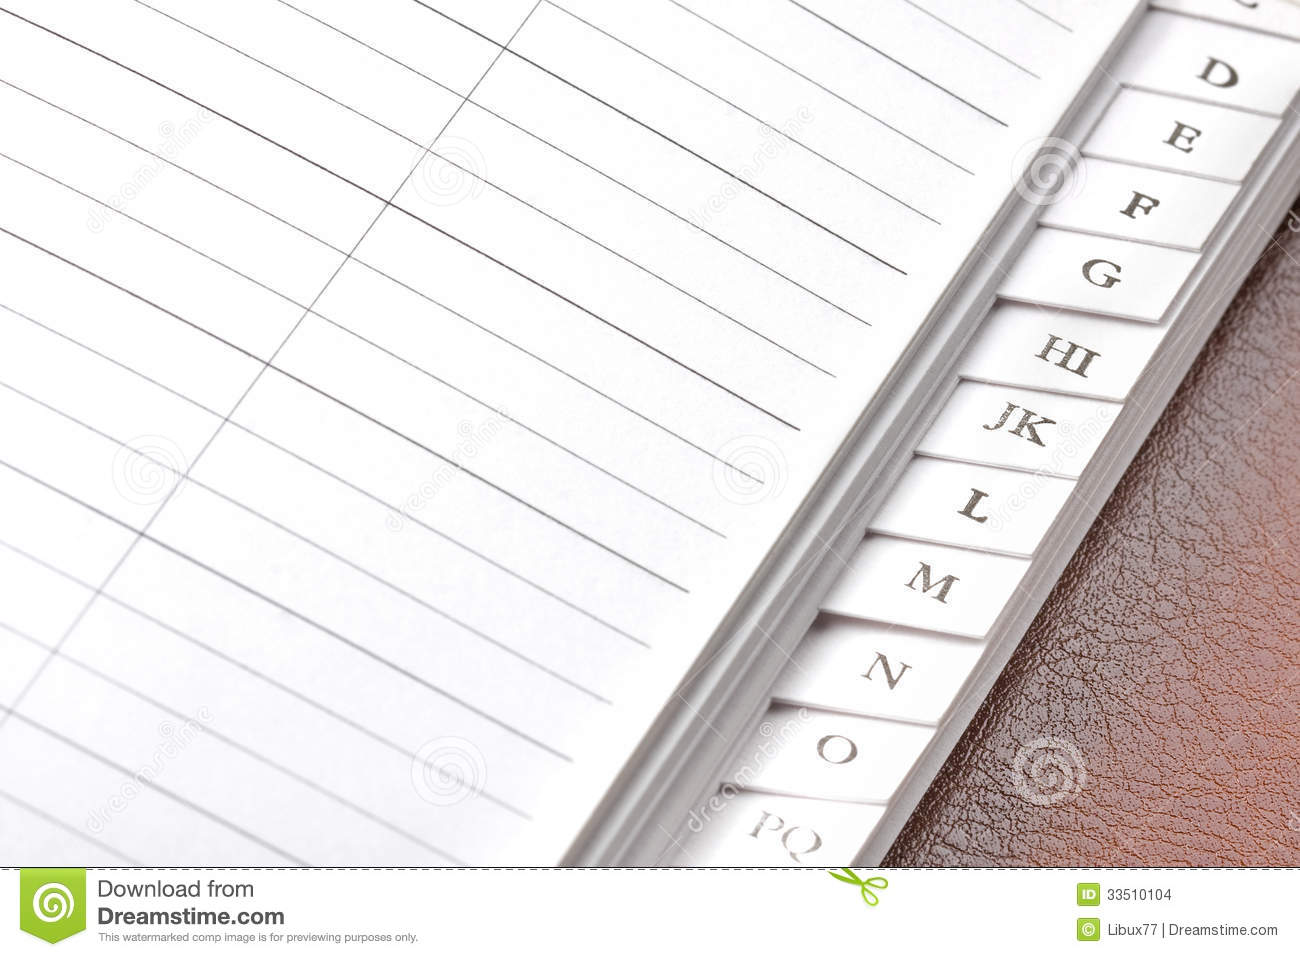 It is a photo of Printable Address Book Free Download in full page